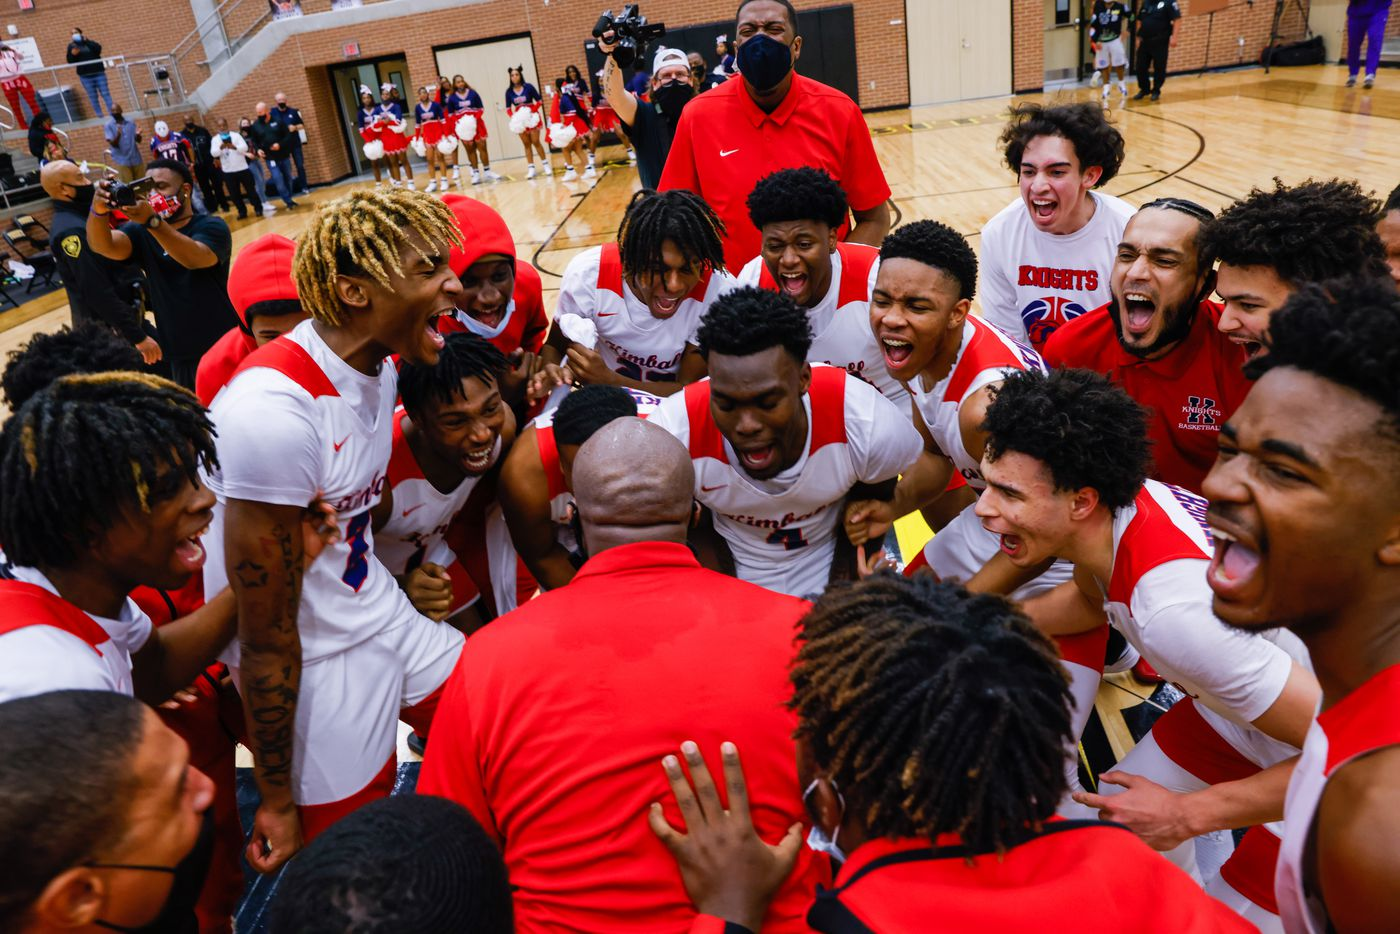 Kimball celebrates their win over Lancaster following overtime of a boys basketball UIL Class 5A Region II playoff game in Forney on Friday, March 5, 2021. (Juan Figueroa/ The Dallas Morning News)